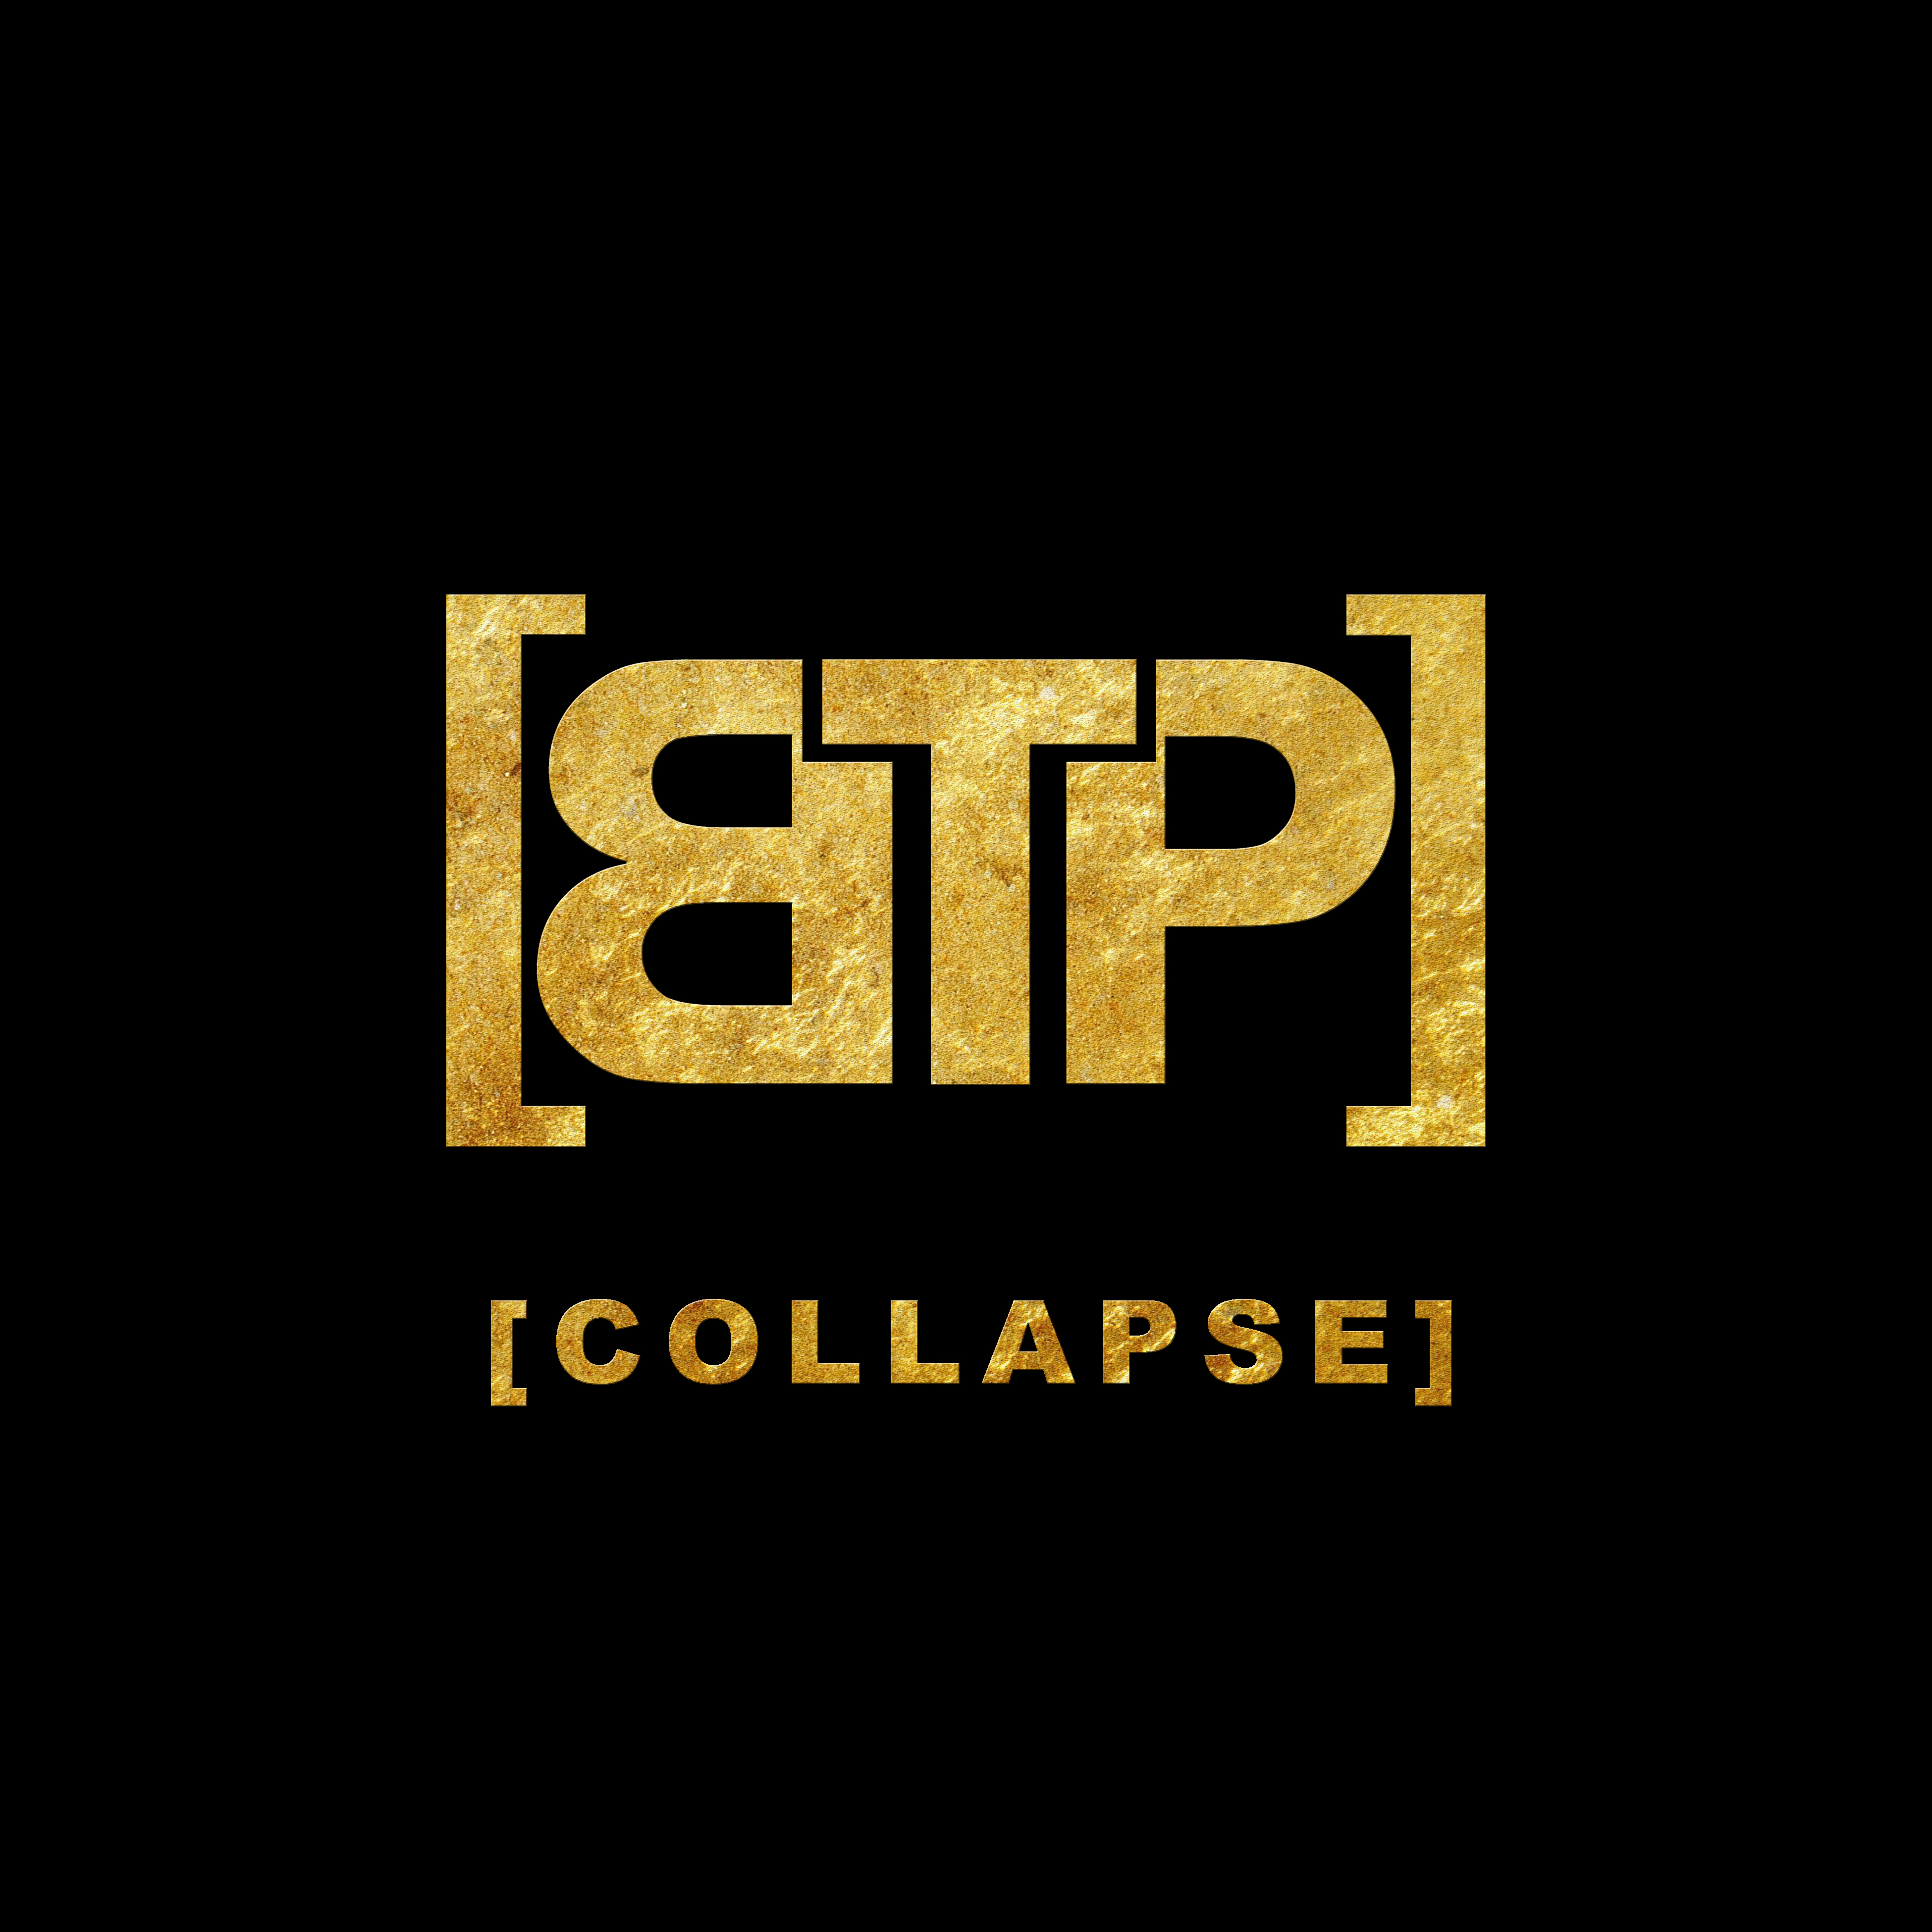 [COLLAPSE] (2013)